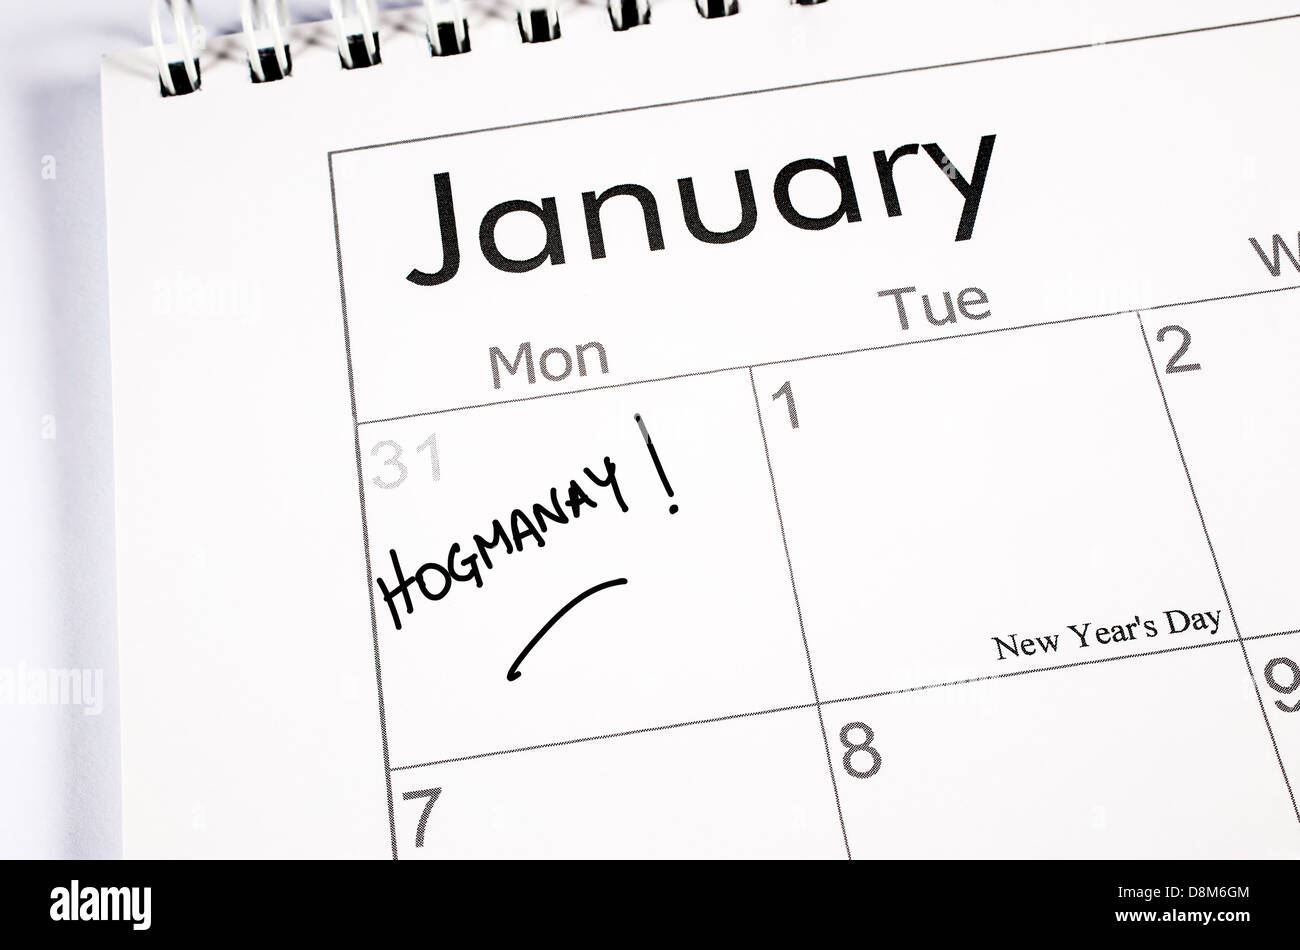 Calendar page with New Year's Eve noted with the word Hogmanay written in the date space - Stock Image